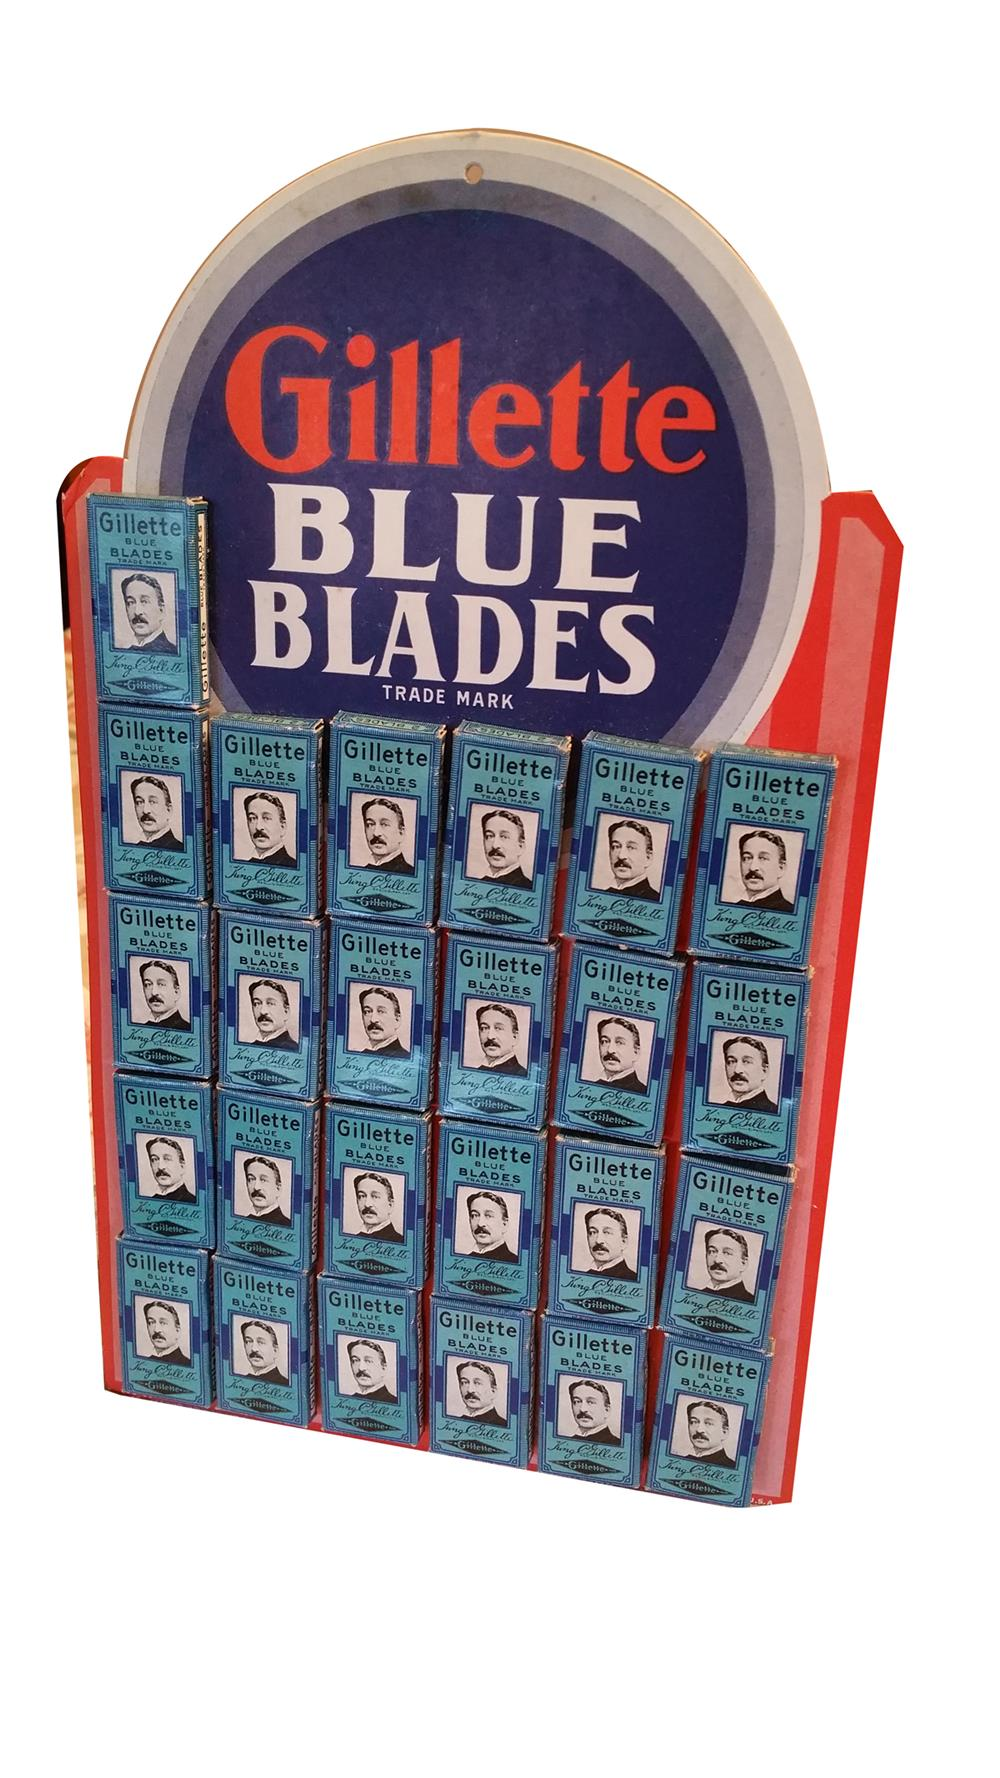 NOS 1920s-30s Gillette Razor Blades countertop store display still full of original NOS blades. - Front 3/4 - 188046